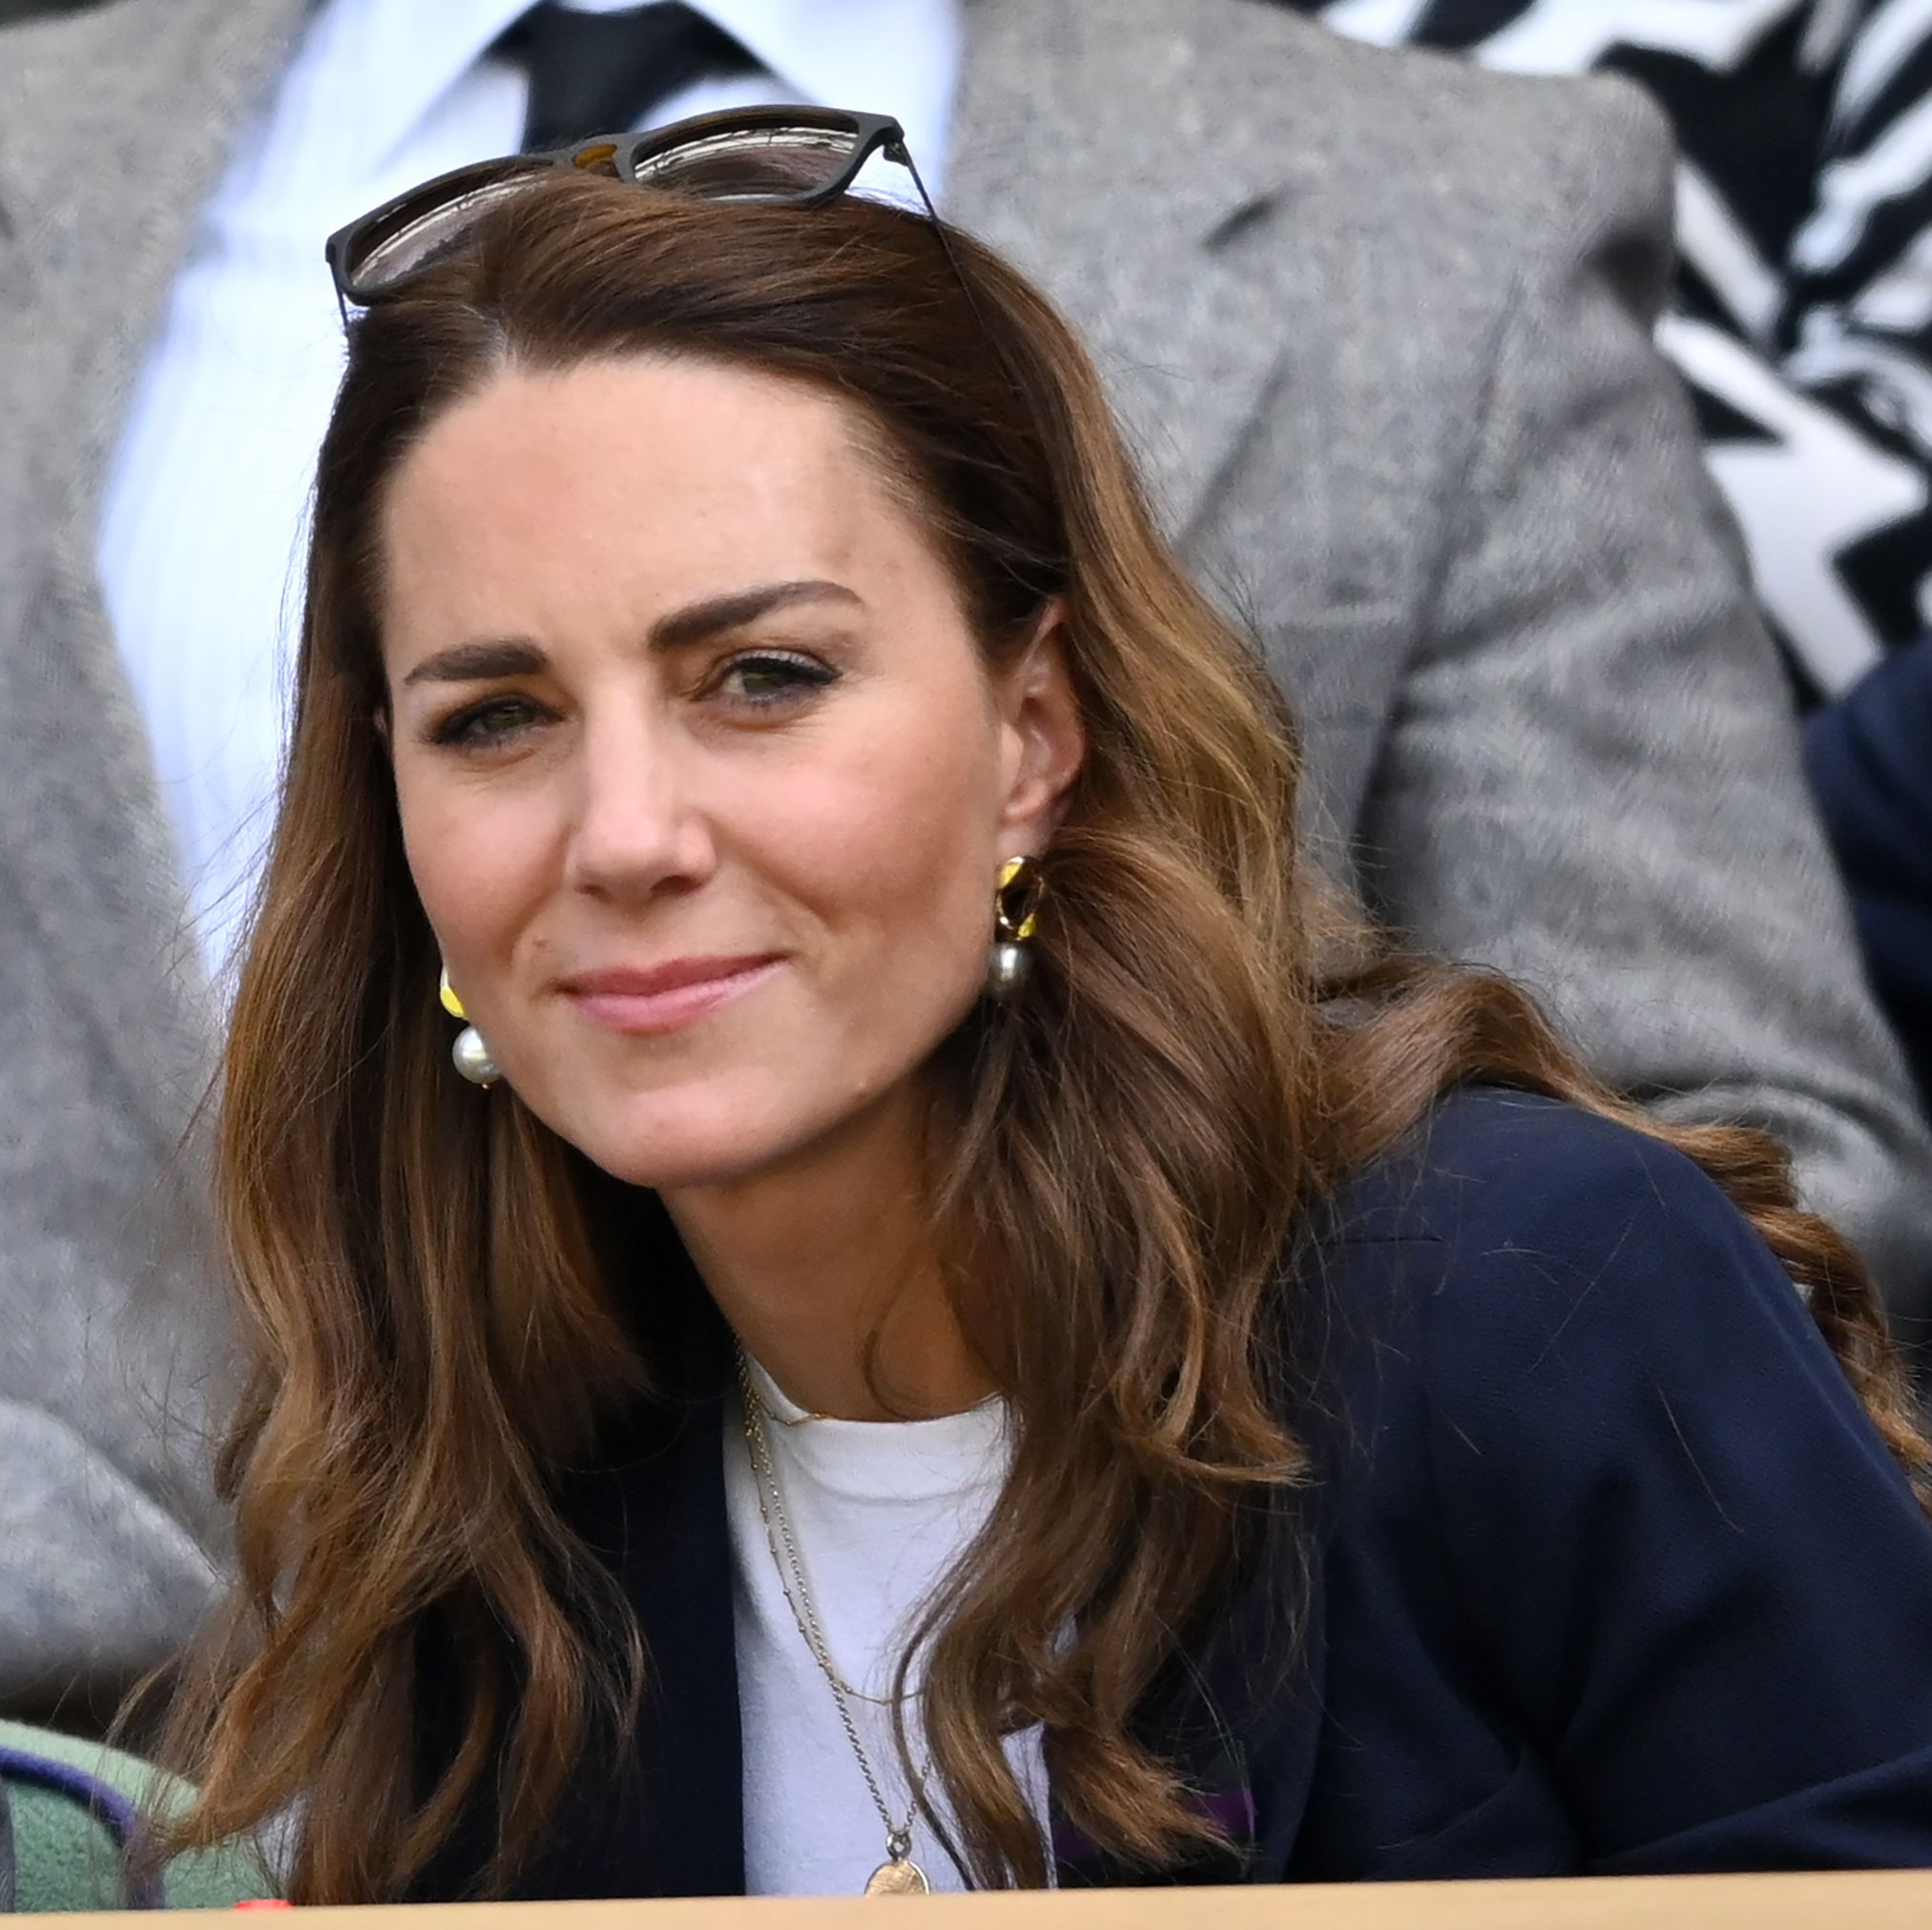 Kate Middleton is Self-Isolating After Coming into Contact With Someone With COVID-19